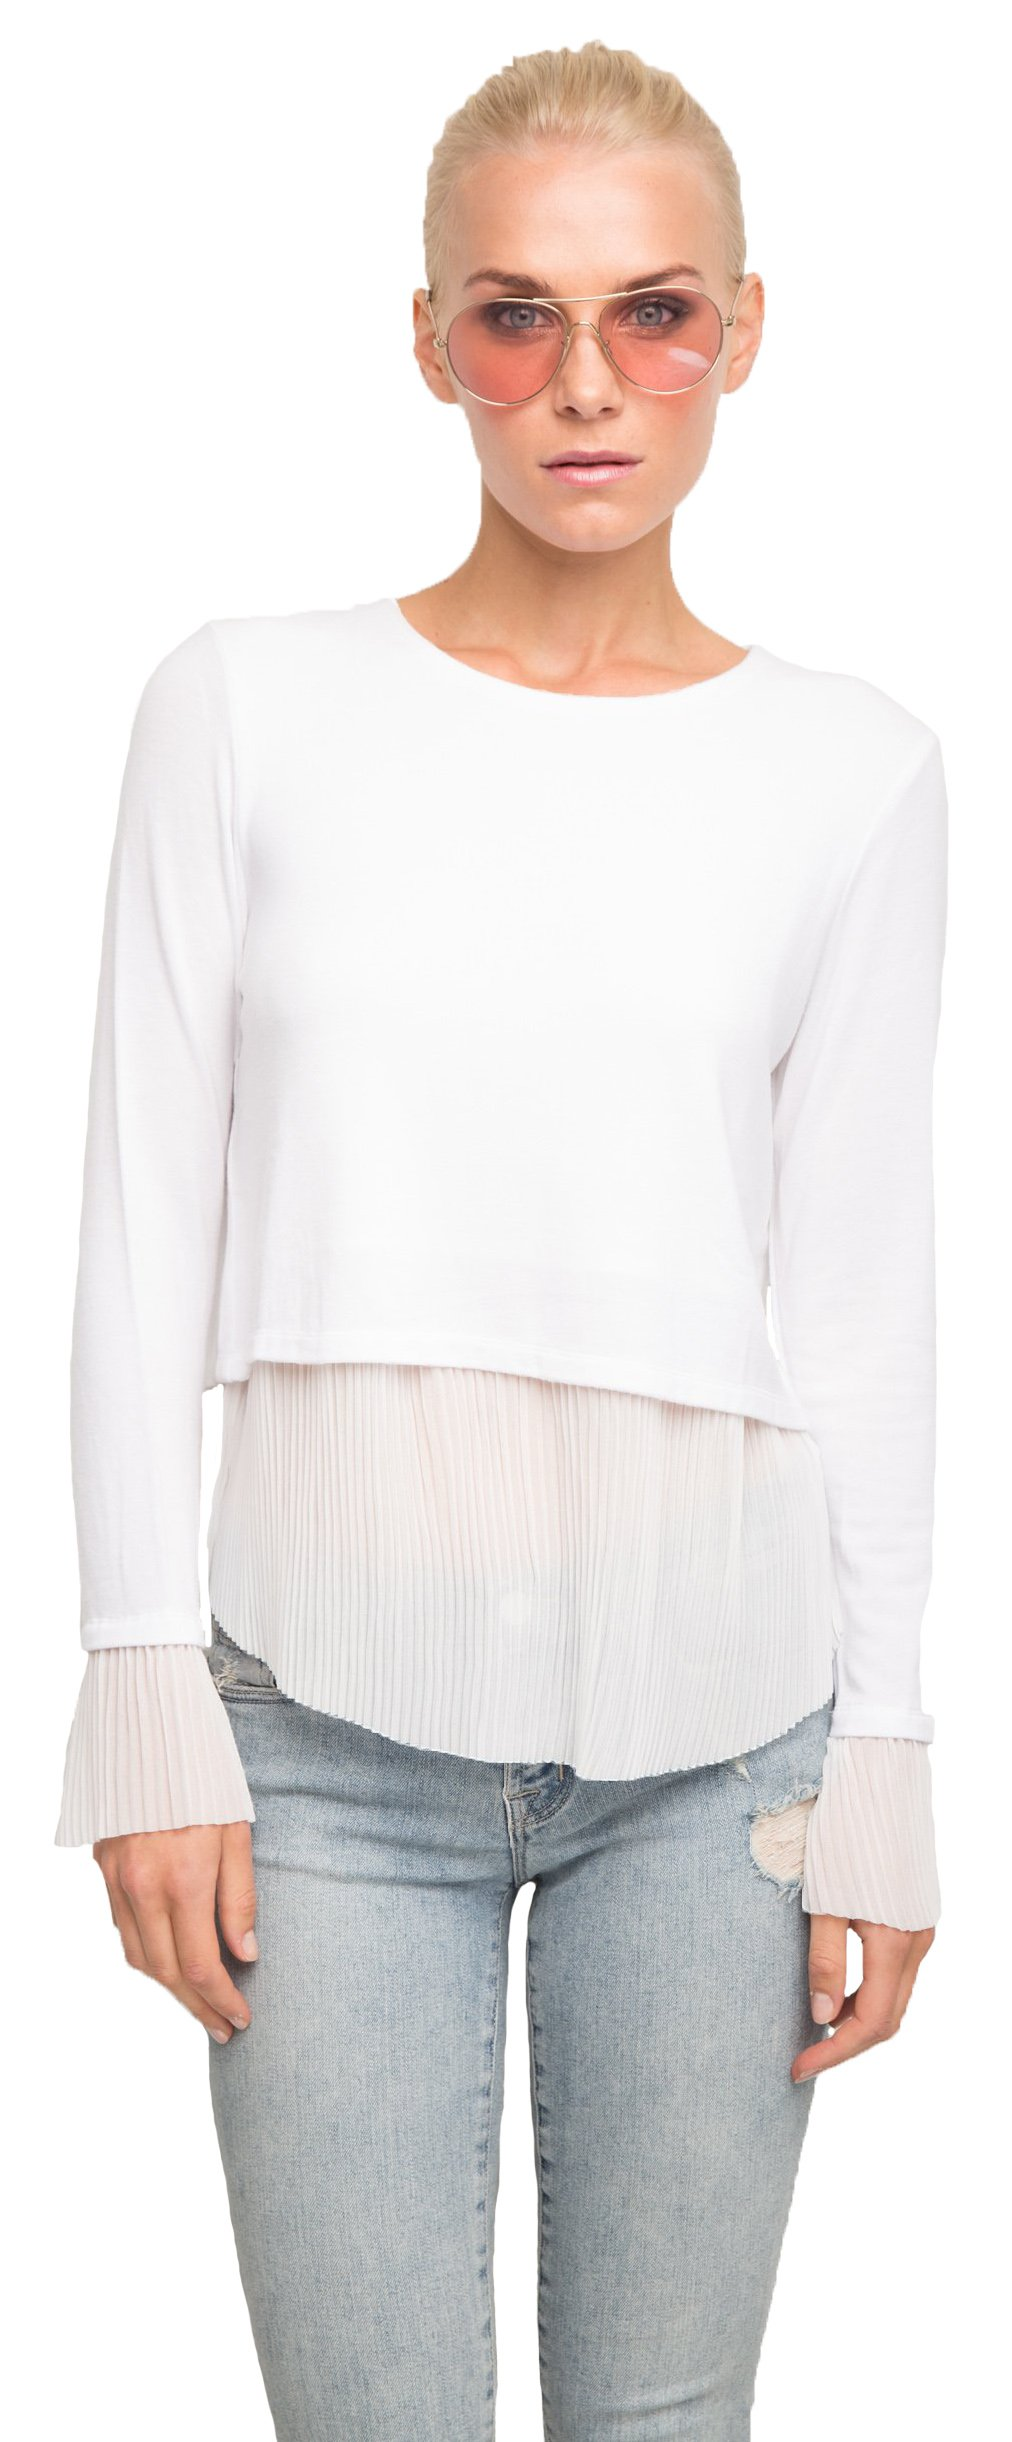 Generation Love Denise Top With Pleated Cuff and Hem, s